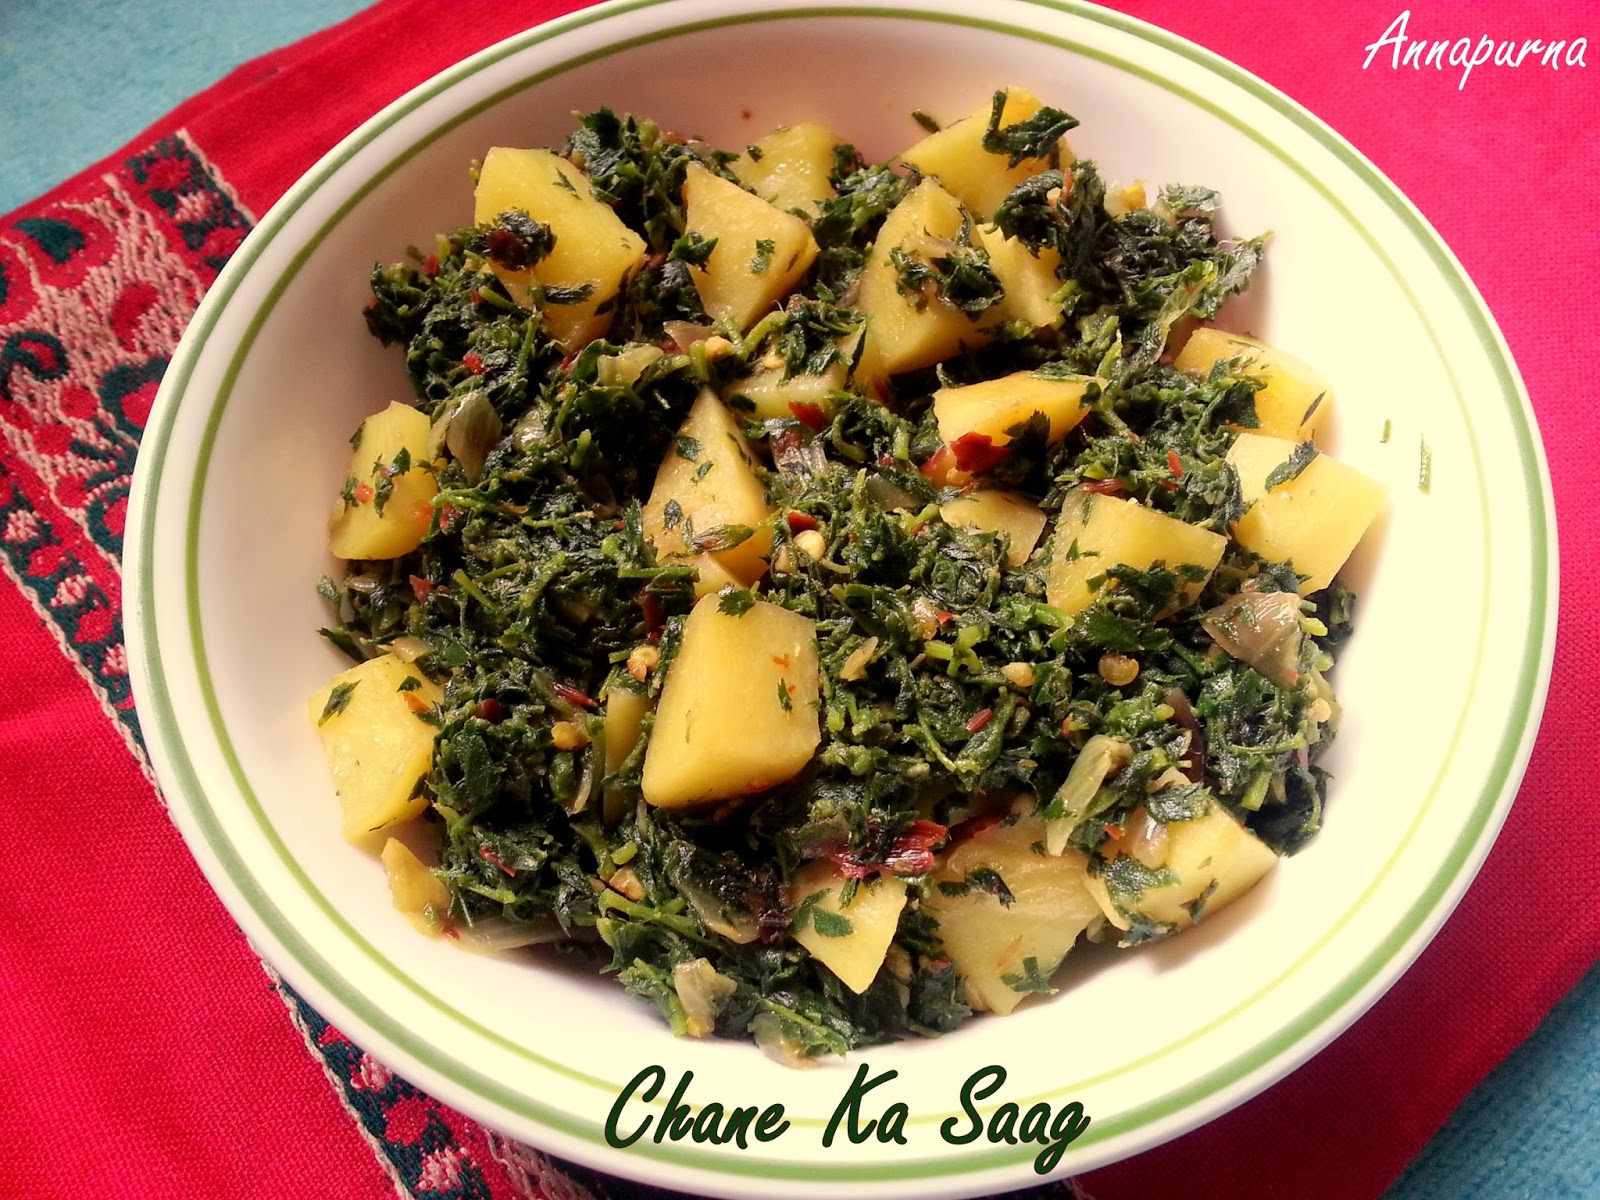 Annapurna chane ka saag chickpea leaves with potato stir fry recipe chane ka saag chickpea leaves with potato stir fry recipe forumfinder Image collections